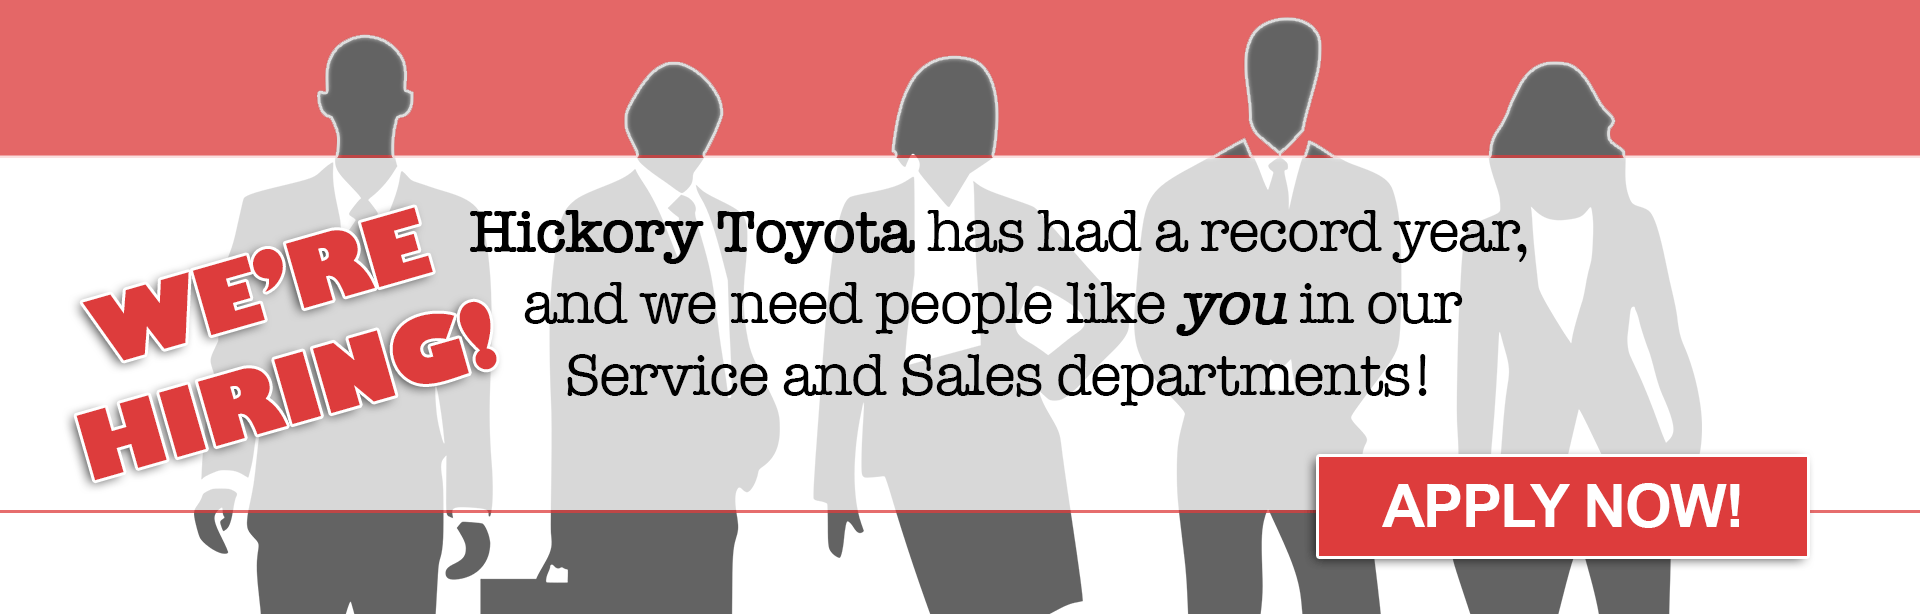 Hickory Toyota is Hiring!